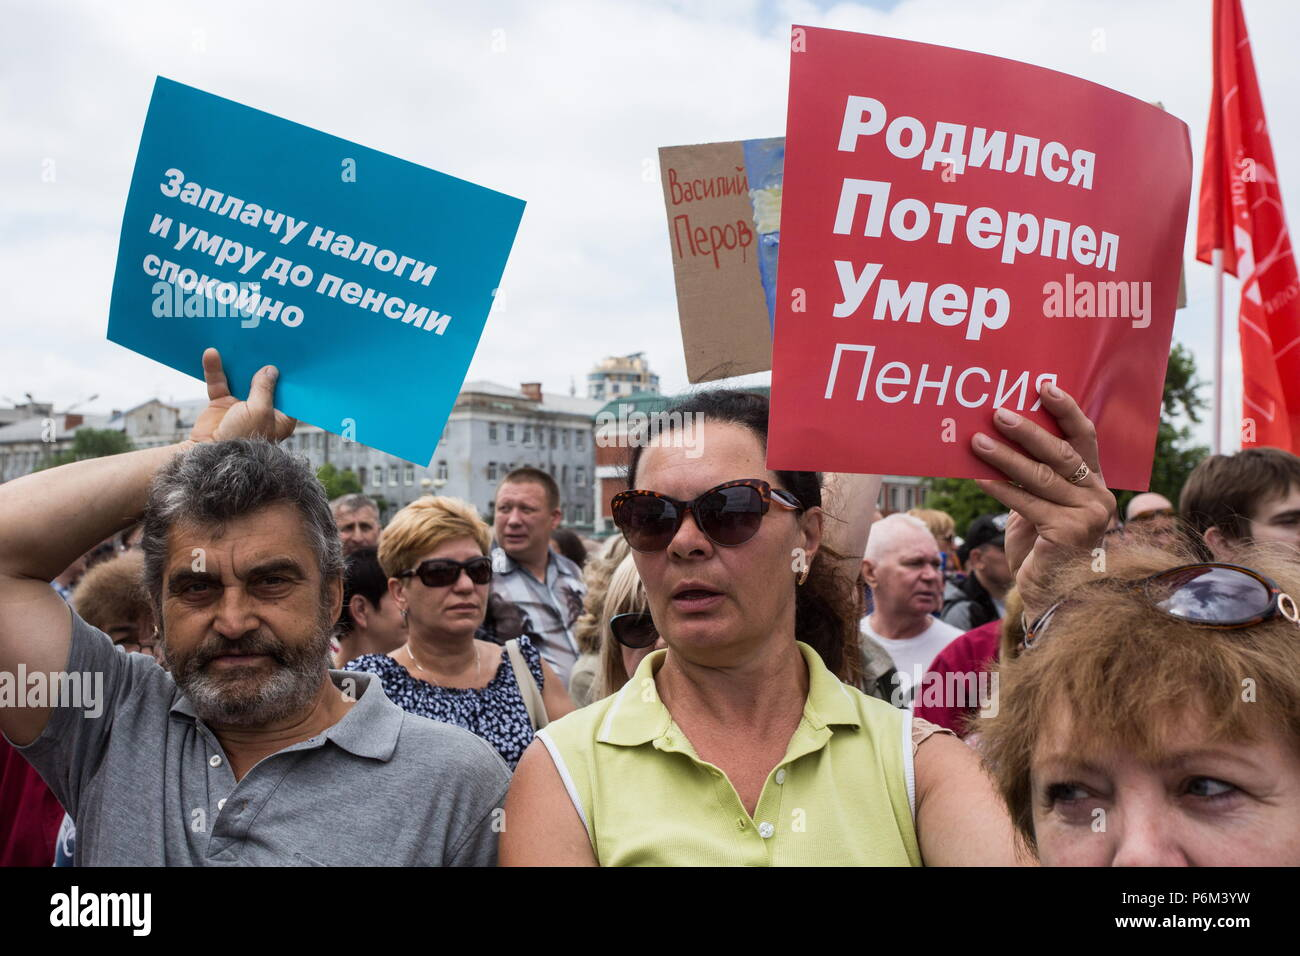 Omsk, Russia. 01st July, 2018. OMSK, RUSSIA - JULY 1, 2018: People in a protest against a draft law proposed by the Russian government to raise the retirement age for men from 60 to 65 years old and for women from 55 to 63 years old. Dmitry Feoktistov/TASS Credit: ITAR-TASS News Agency/Alamy Live News - Stock Image